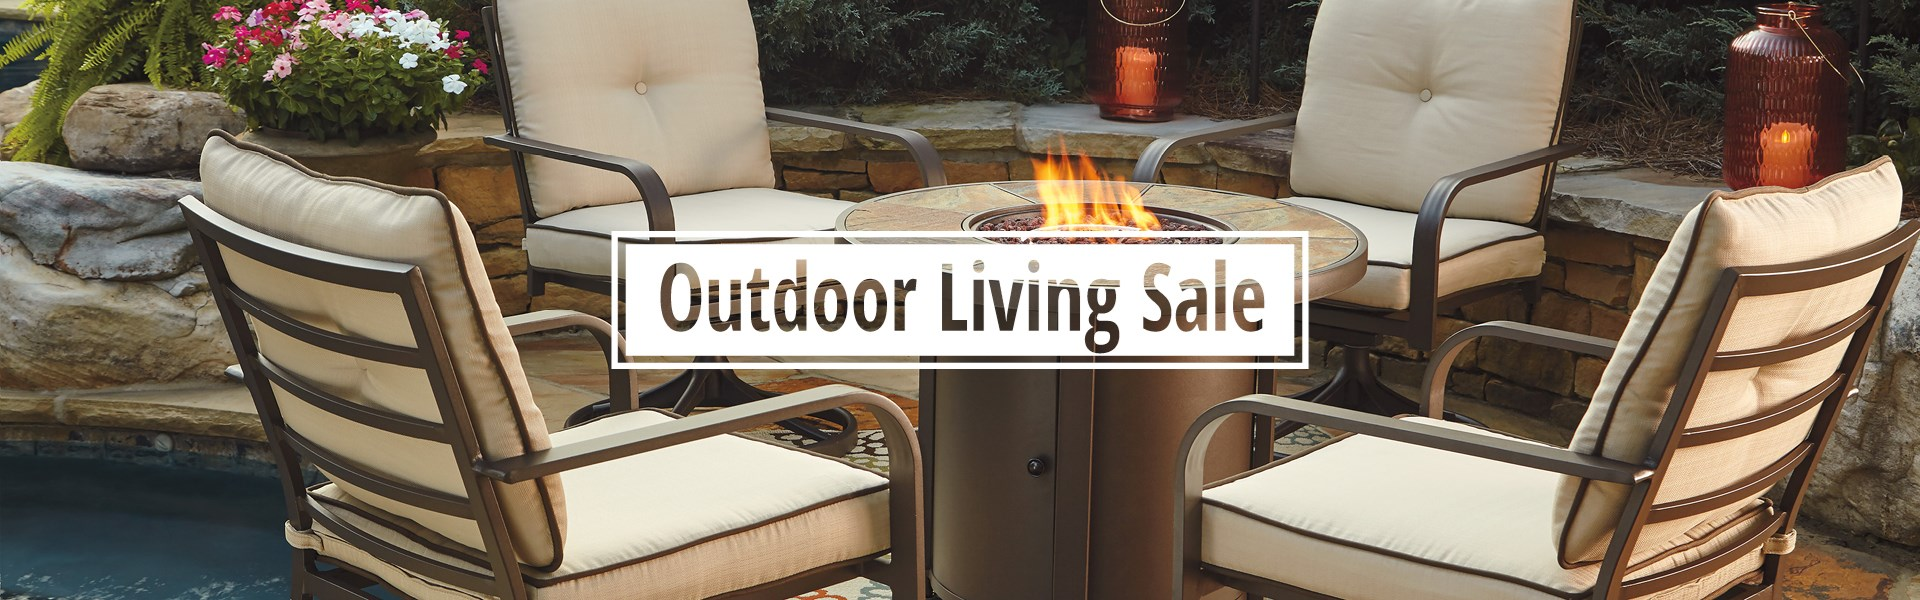 Outdoor And Patio Sale